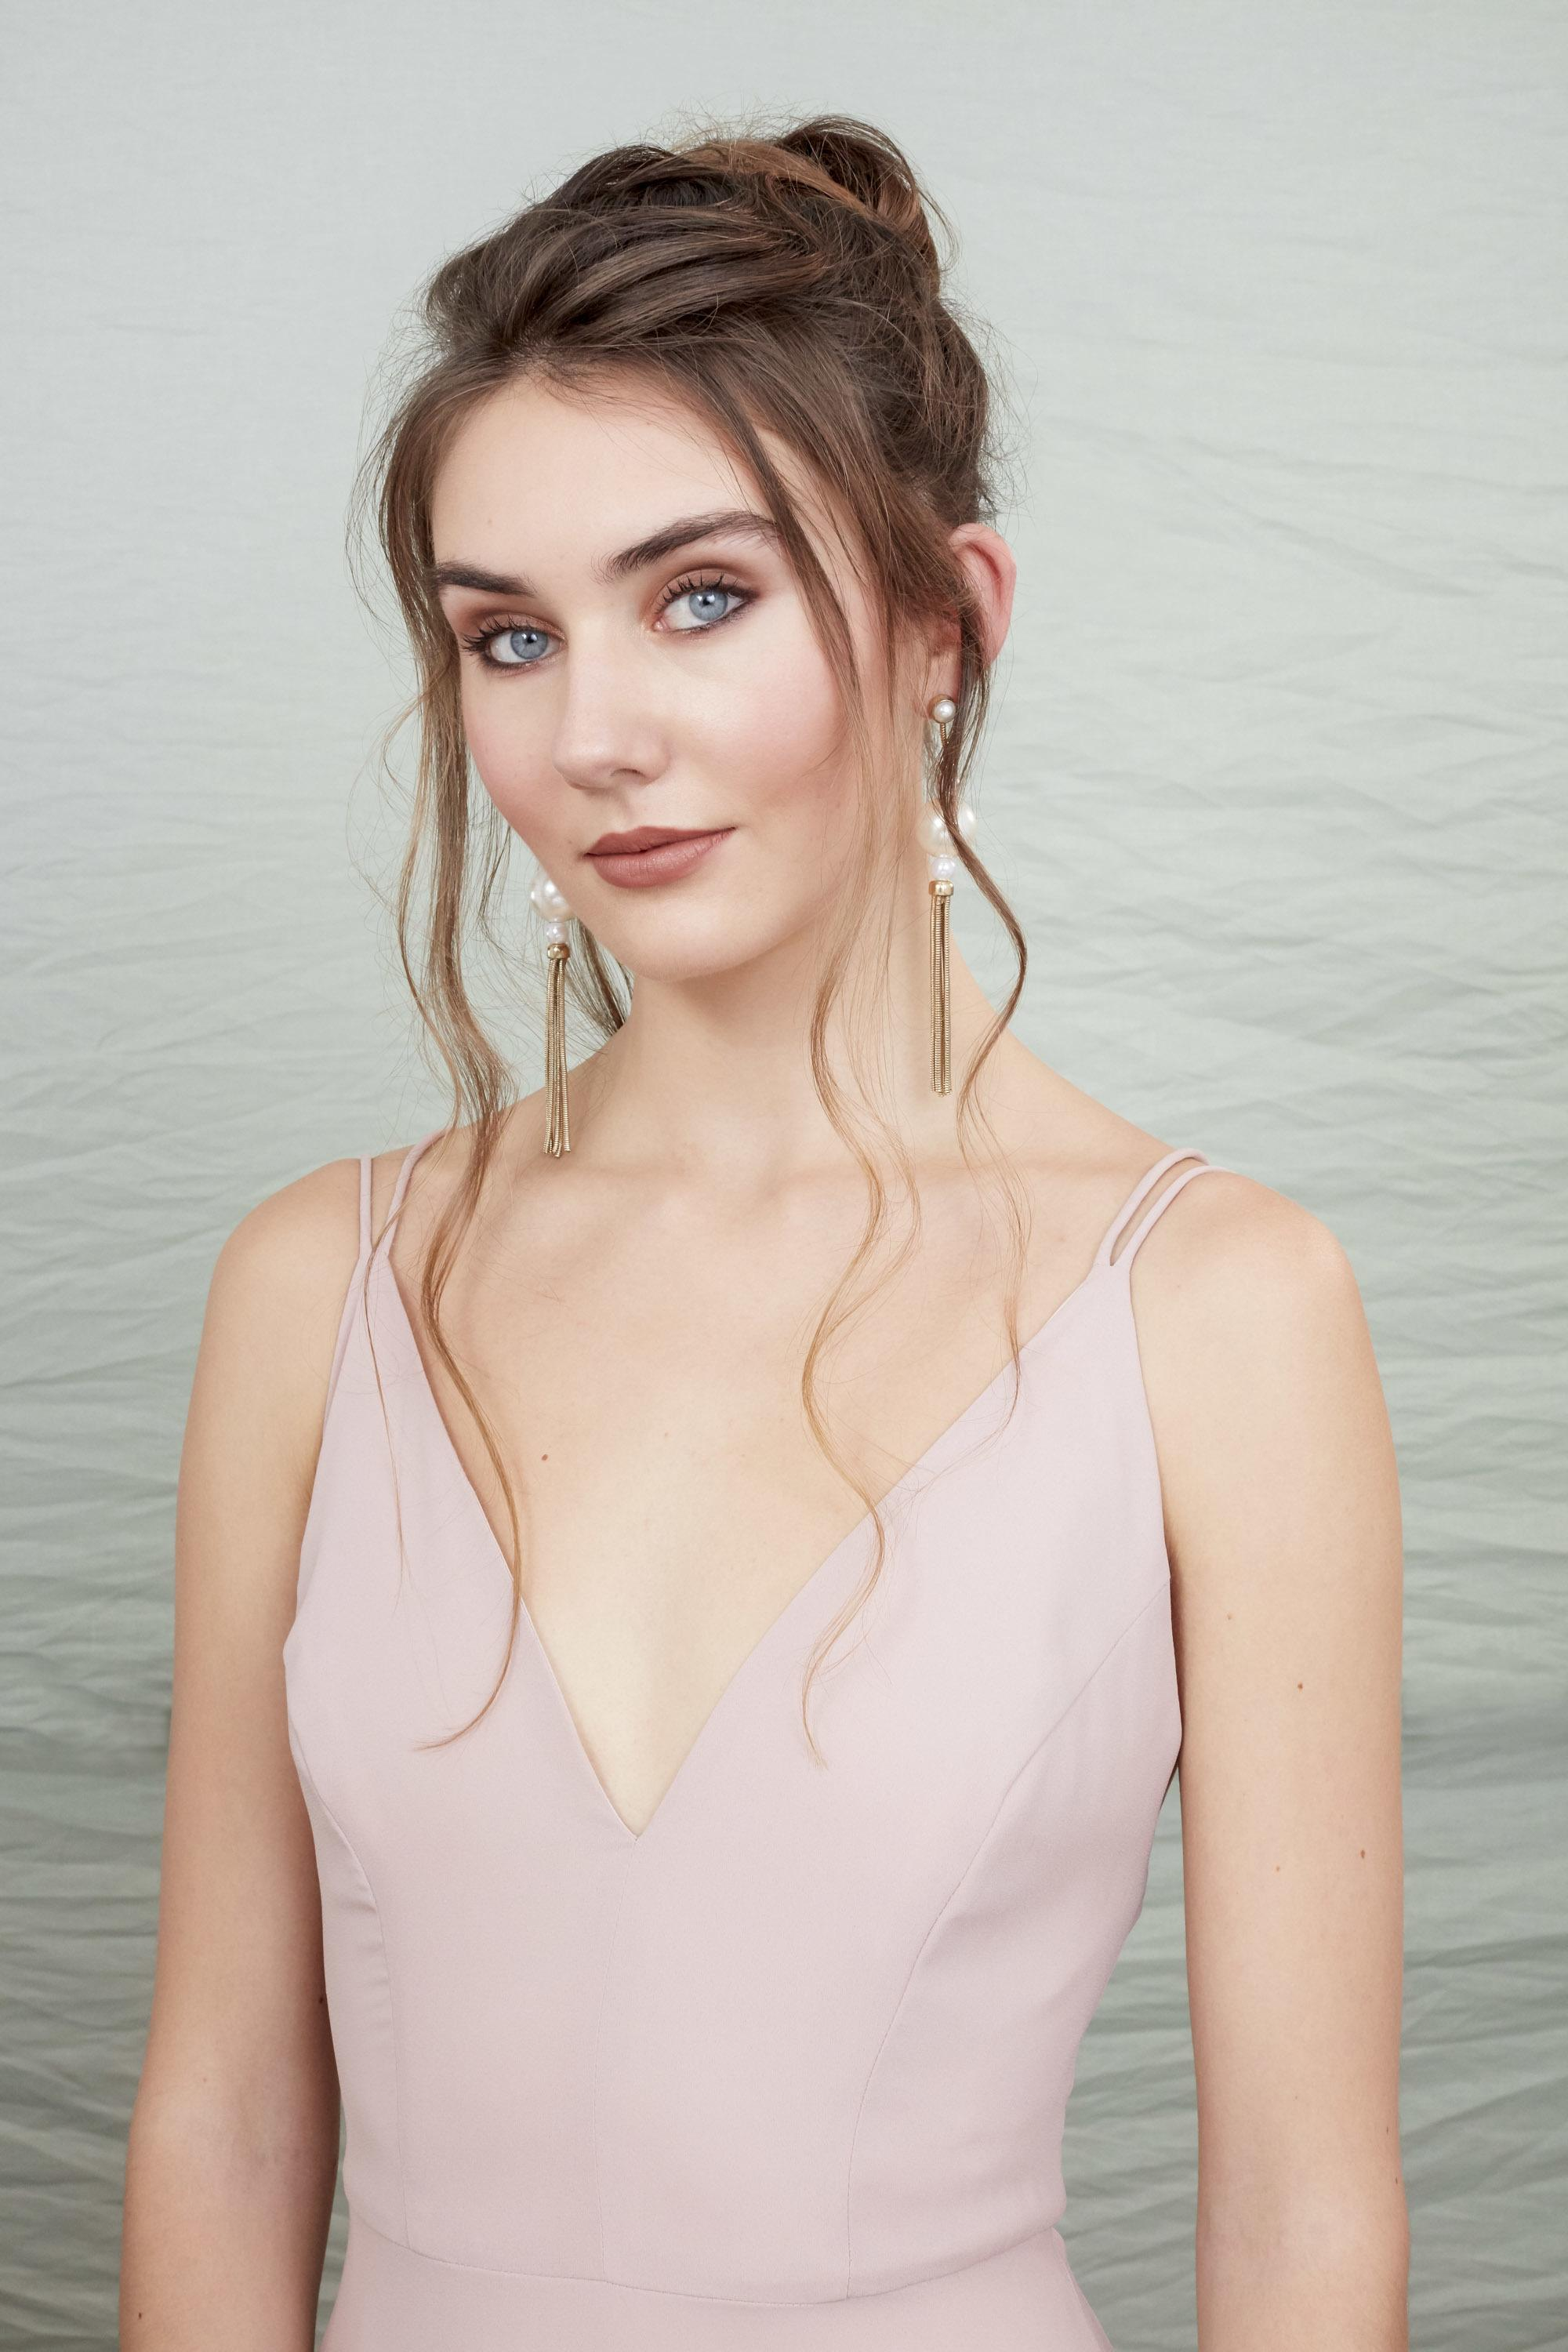 Shot of woman with light brown tousled hair styled into an updo, wearing a pink pale dress, posing in the All Things Hair studio